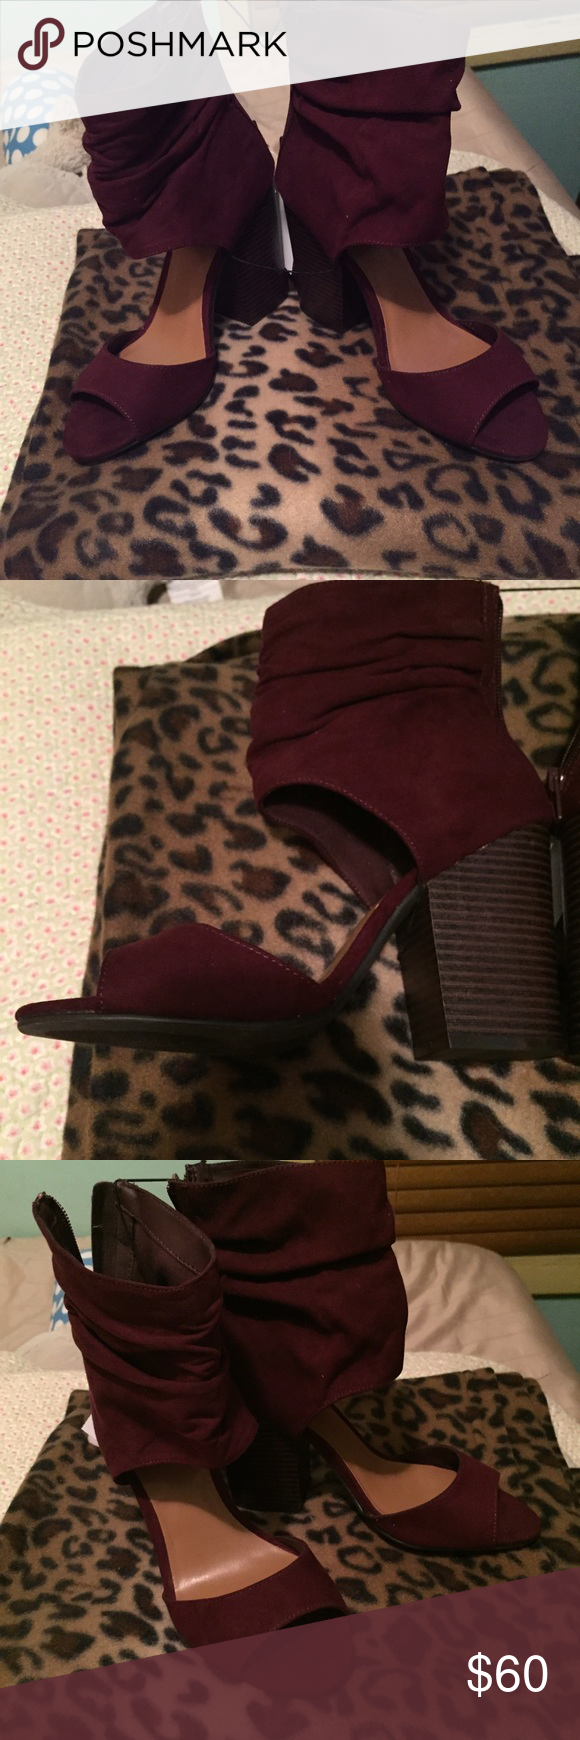 186d590d156 Chunky heel open toe burgundy shoes Very trendy and comfy. Beautiful color  for fall indigo Rd Shoes Heels